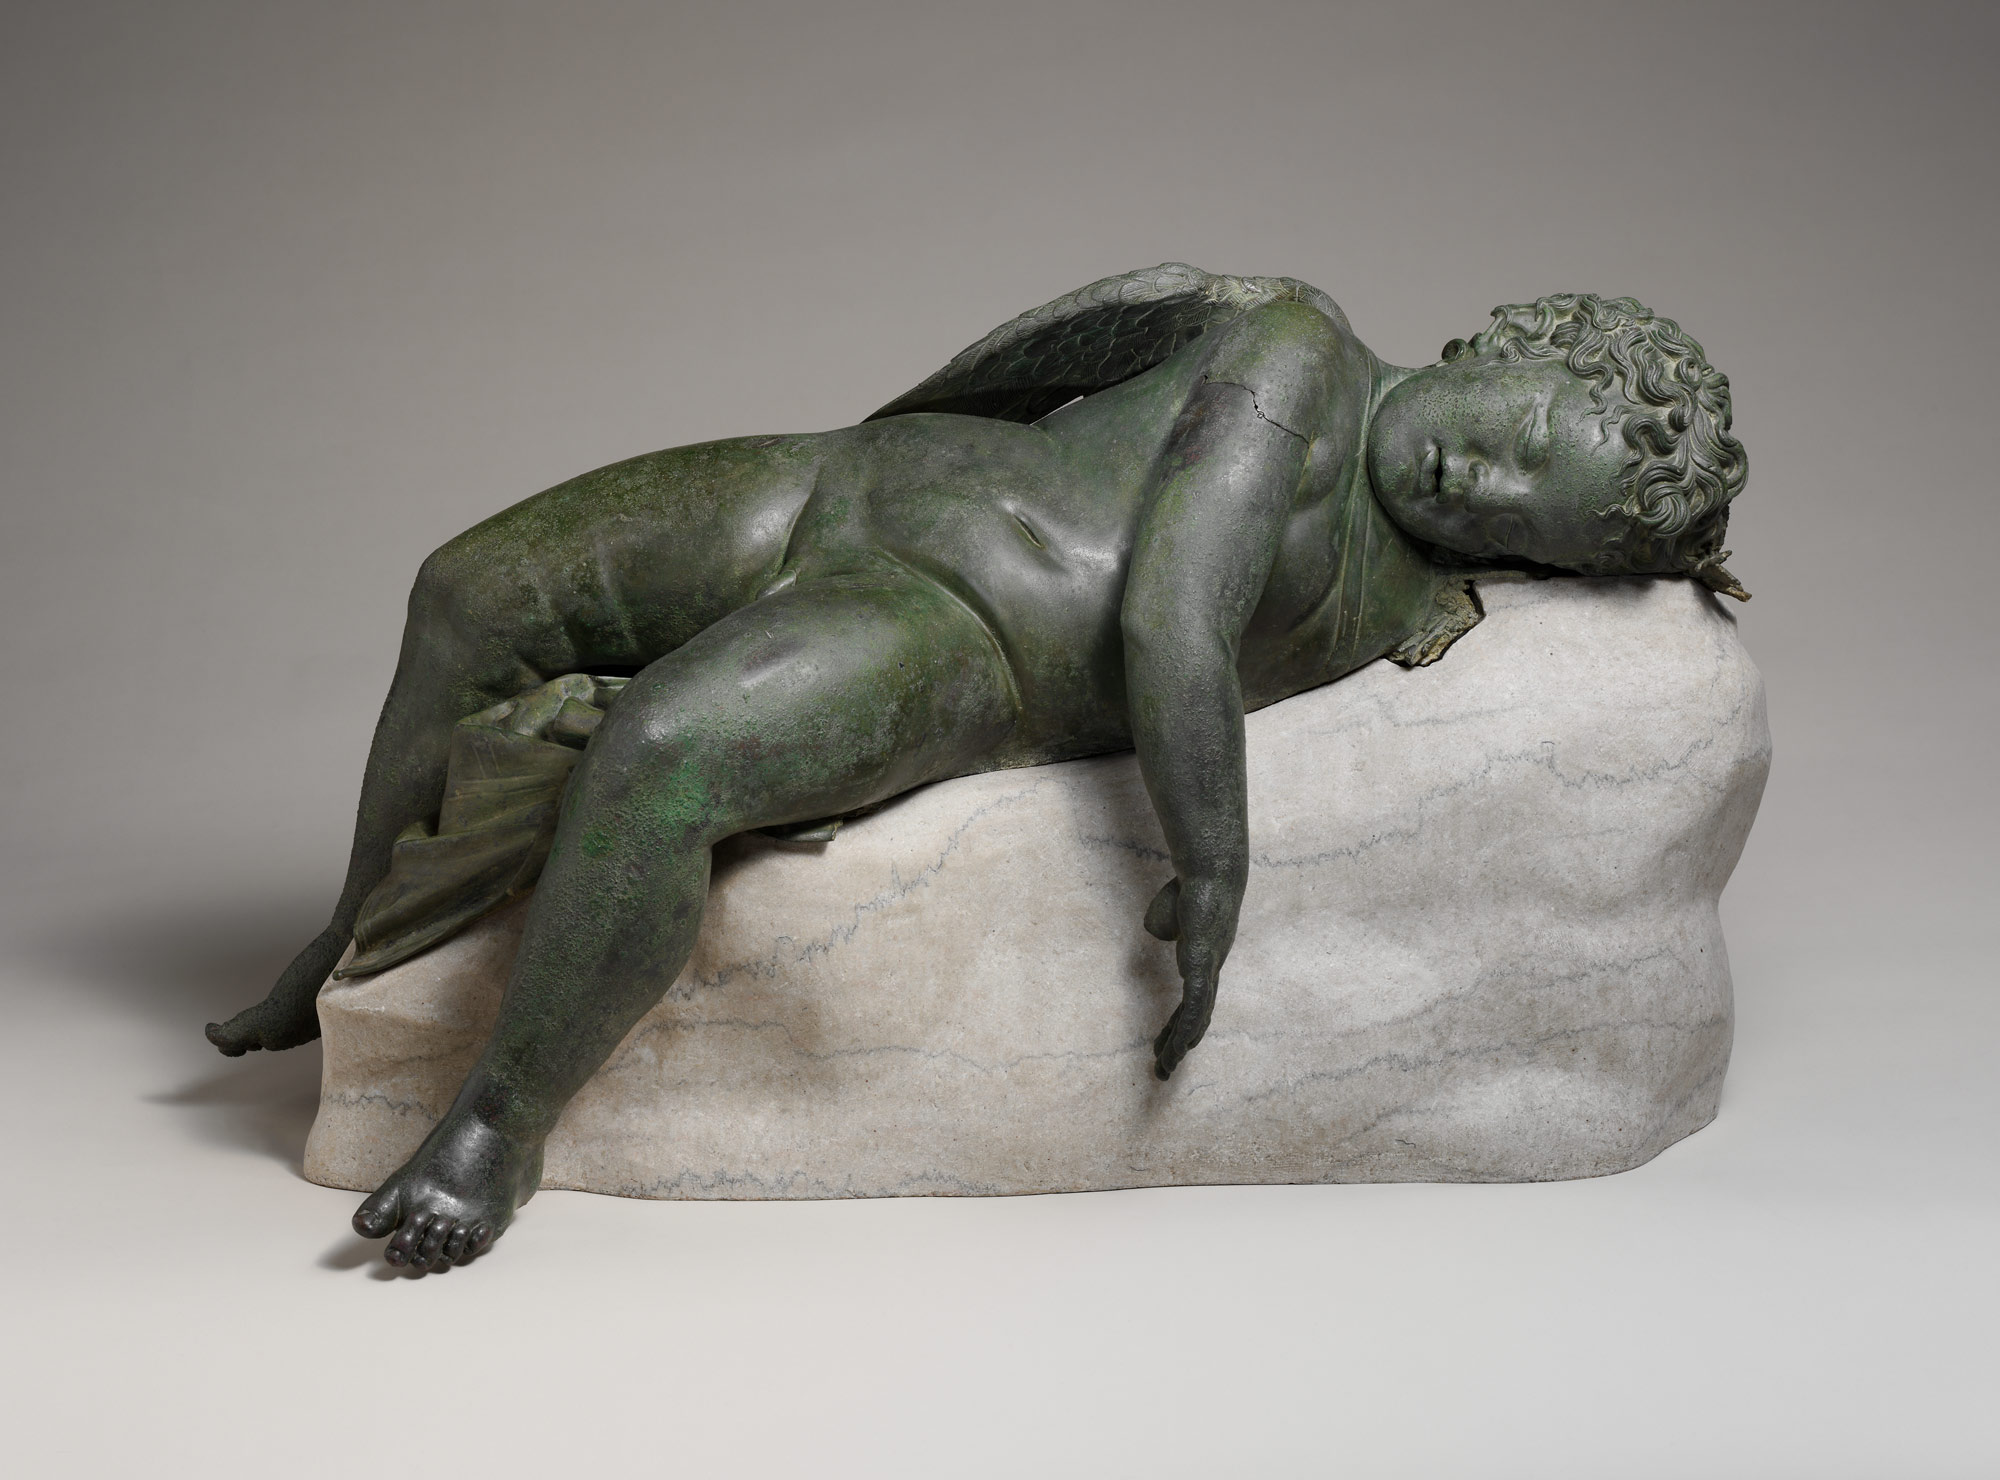 art of the hellenistic age and the hellenistic tradition essay bronze statue of eros sleeping